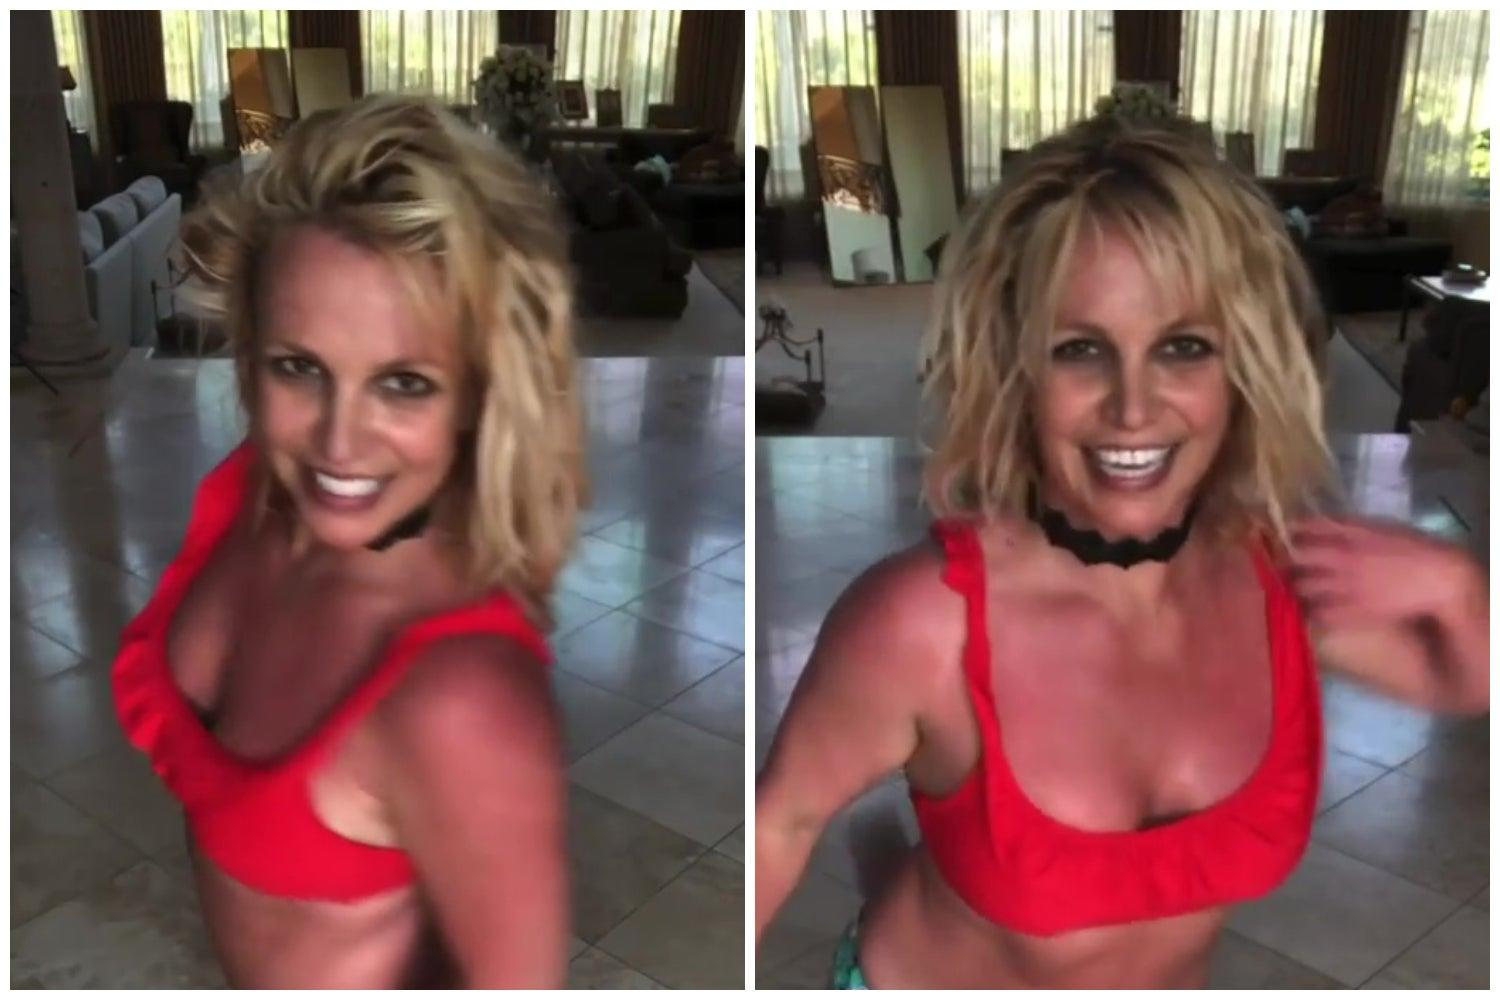 Britney Spears shares new dance video after saying she will not perform under father's control